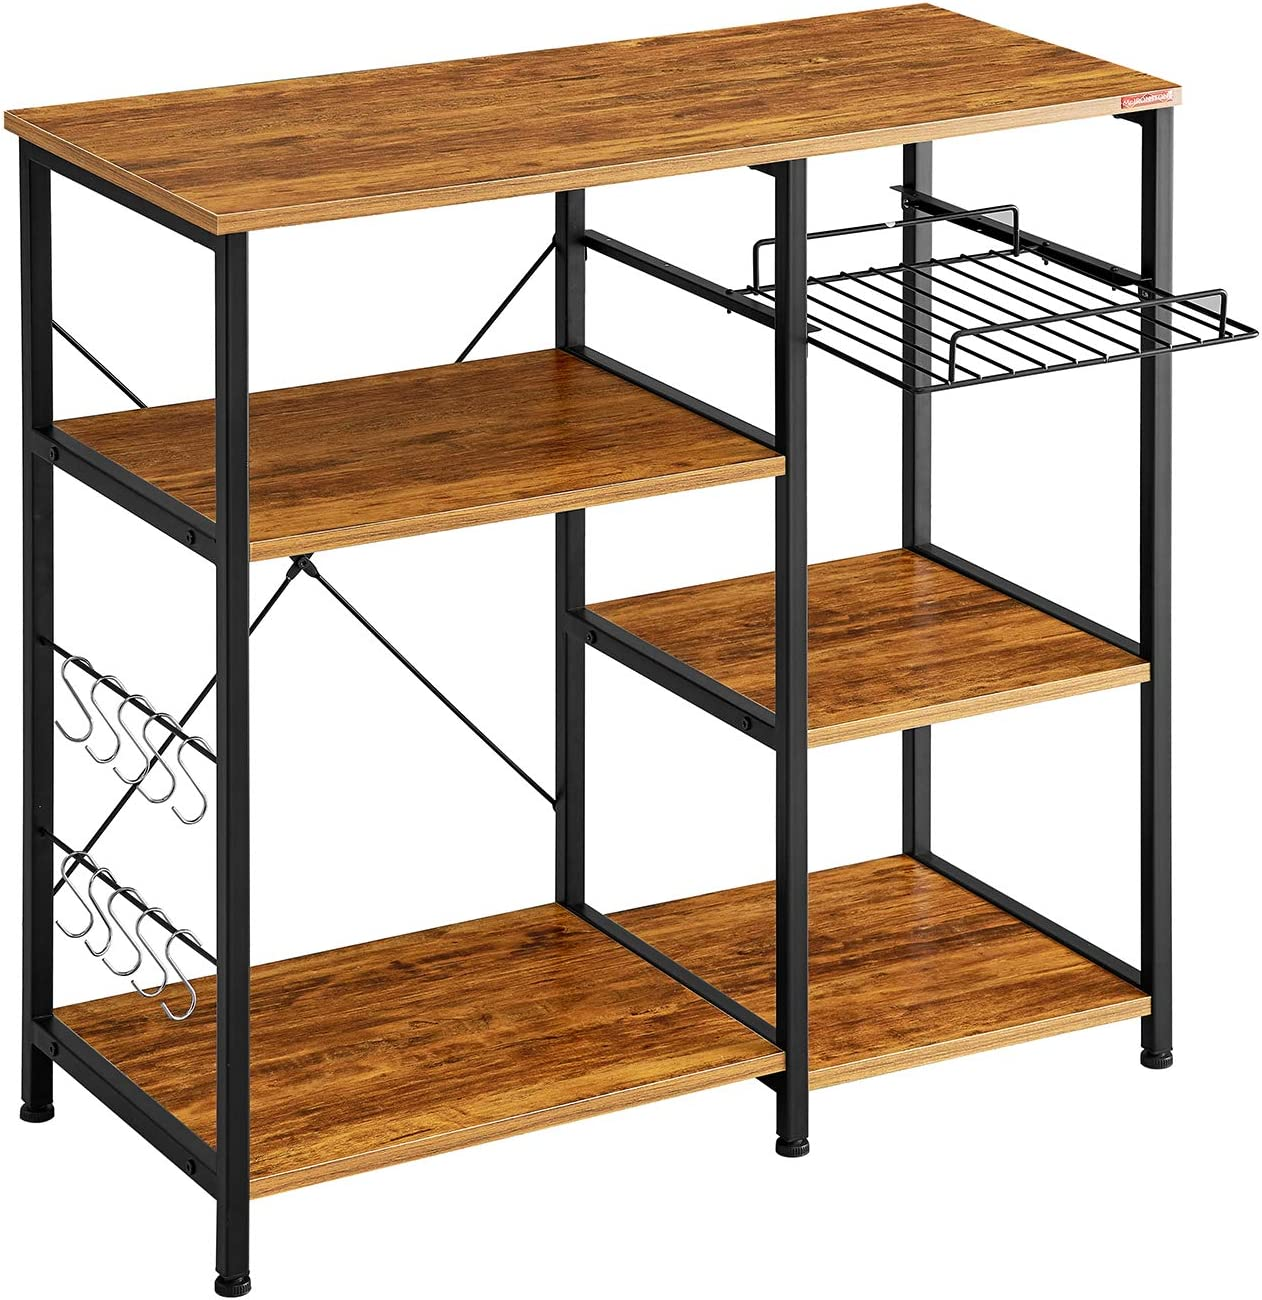 Mr IRONSTONE Kitchen Baker's Rack Vintage Utility Storage Shelf Microwave Stand 3-Tier+3-Tier Table for Spice Rack Organizer Workstation